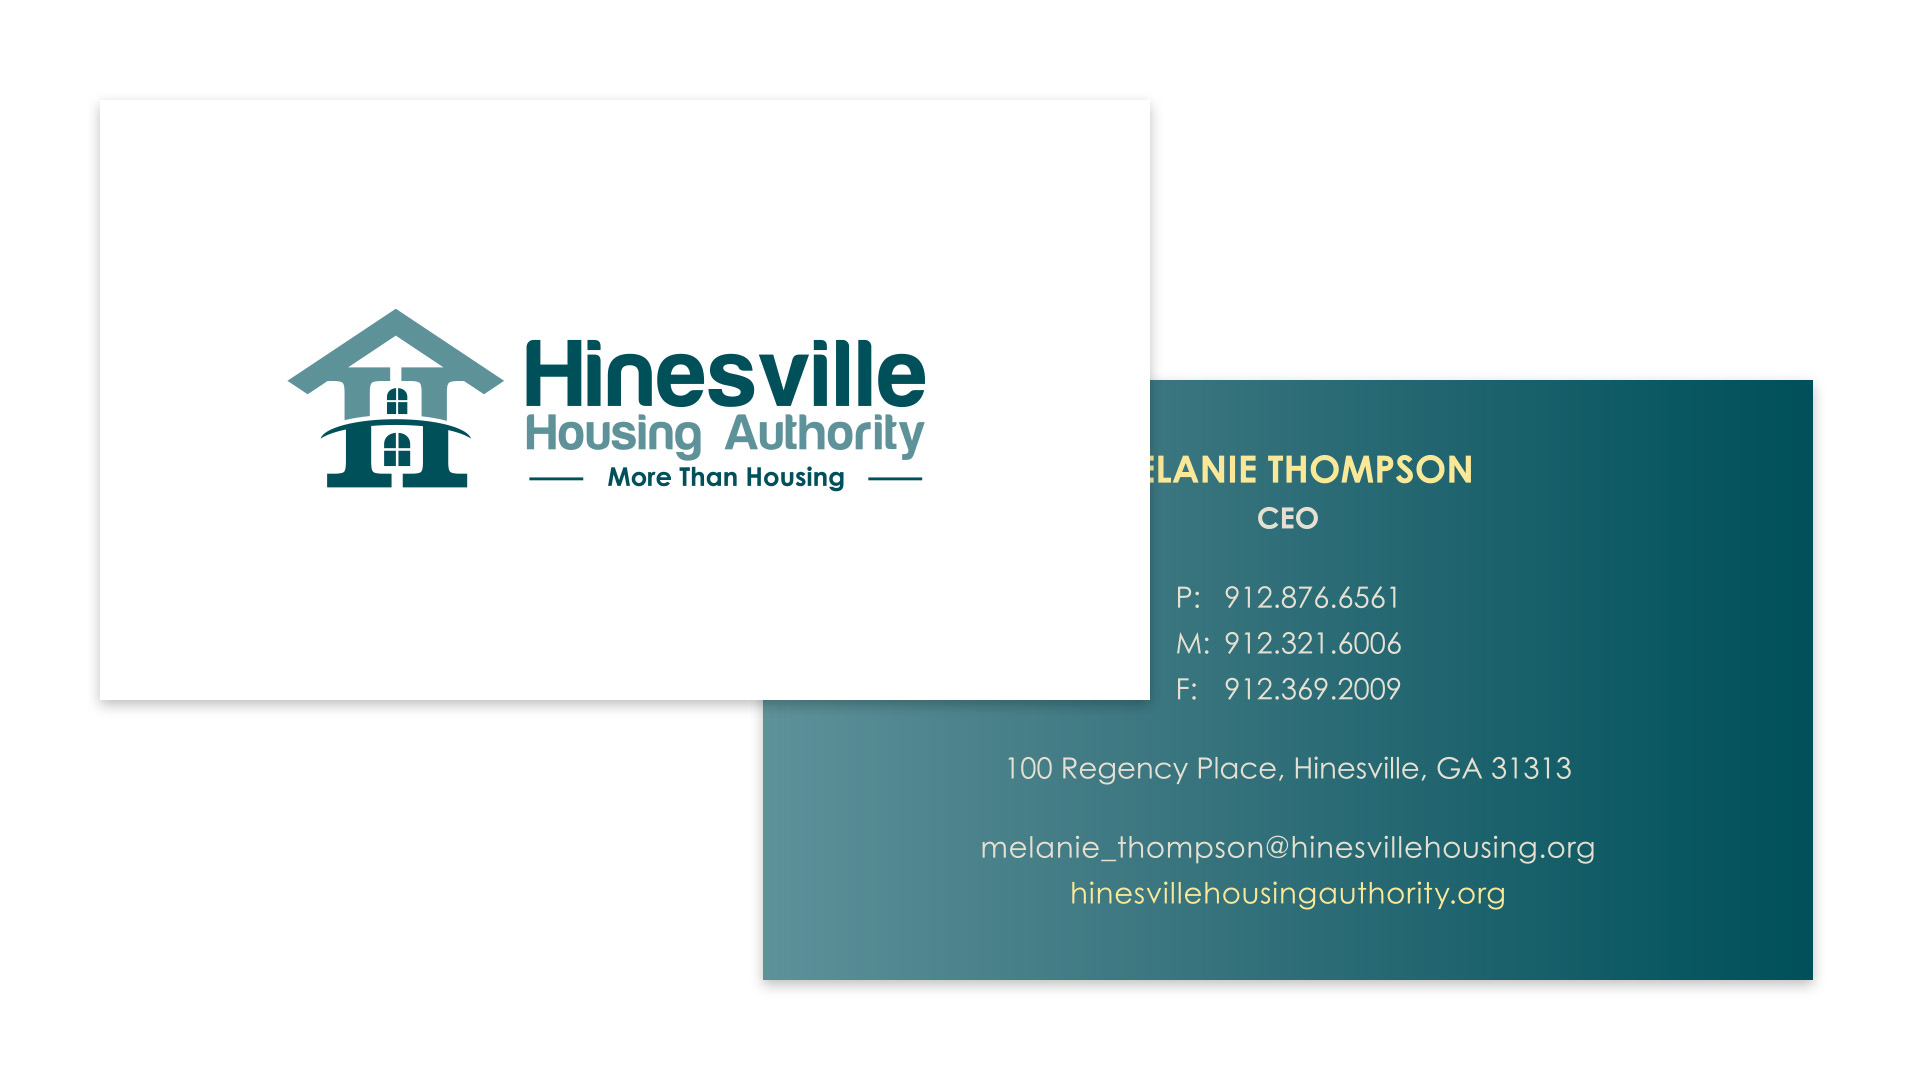 Hinesville Housing Authority Business Cards - Speros - Savannah, GA